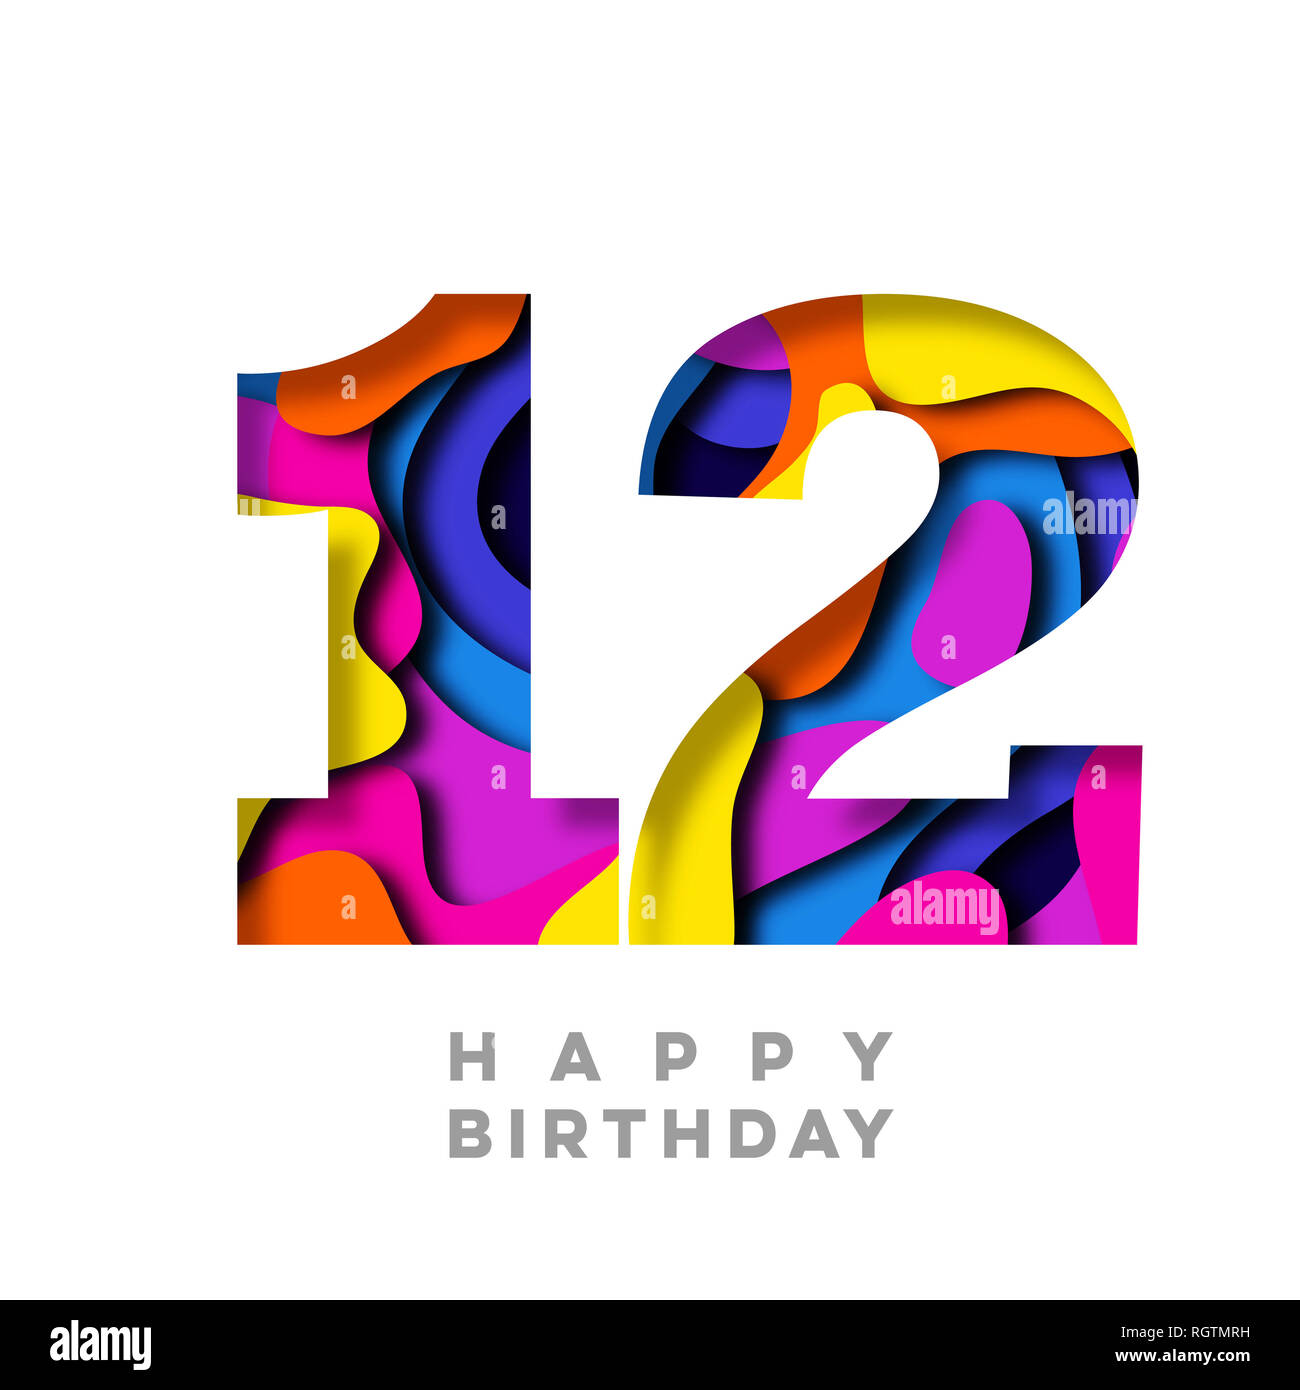 Number 12 Happy Birthday Colorful Paper Cut Out Design